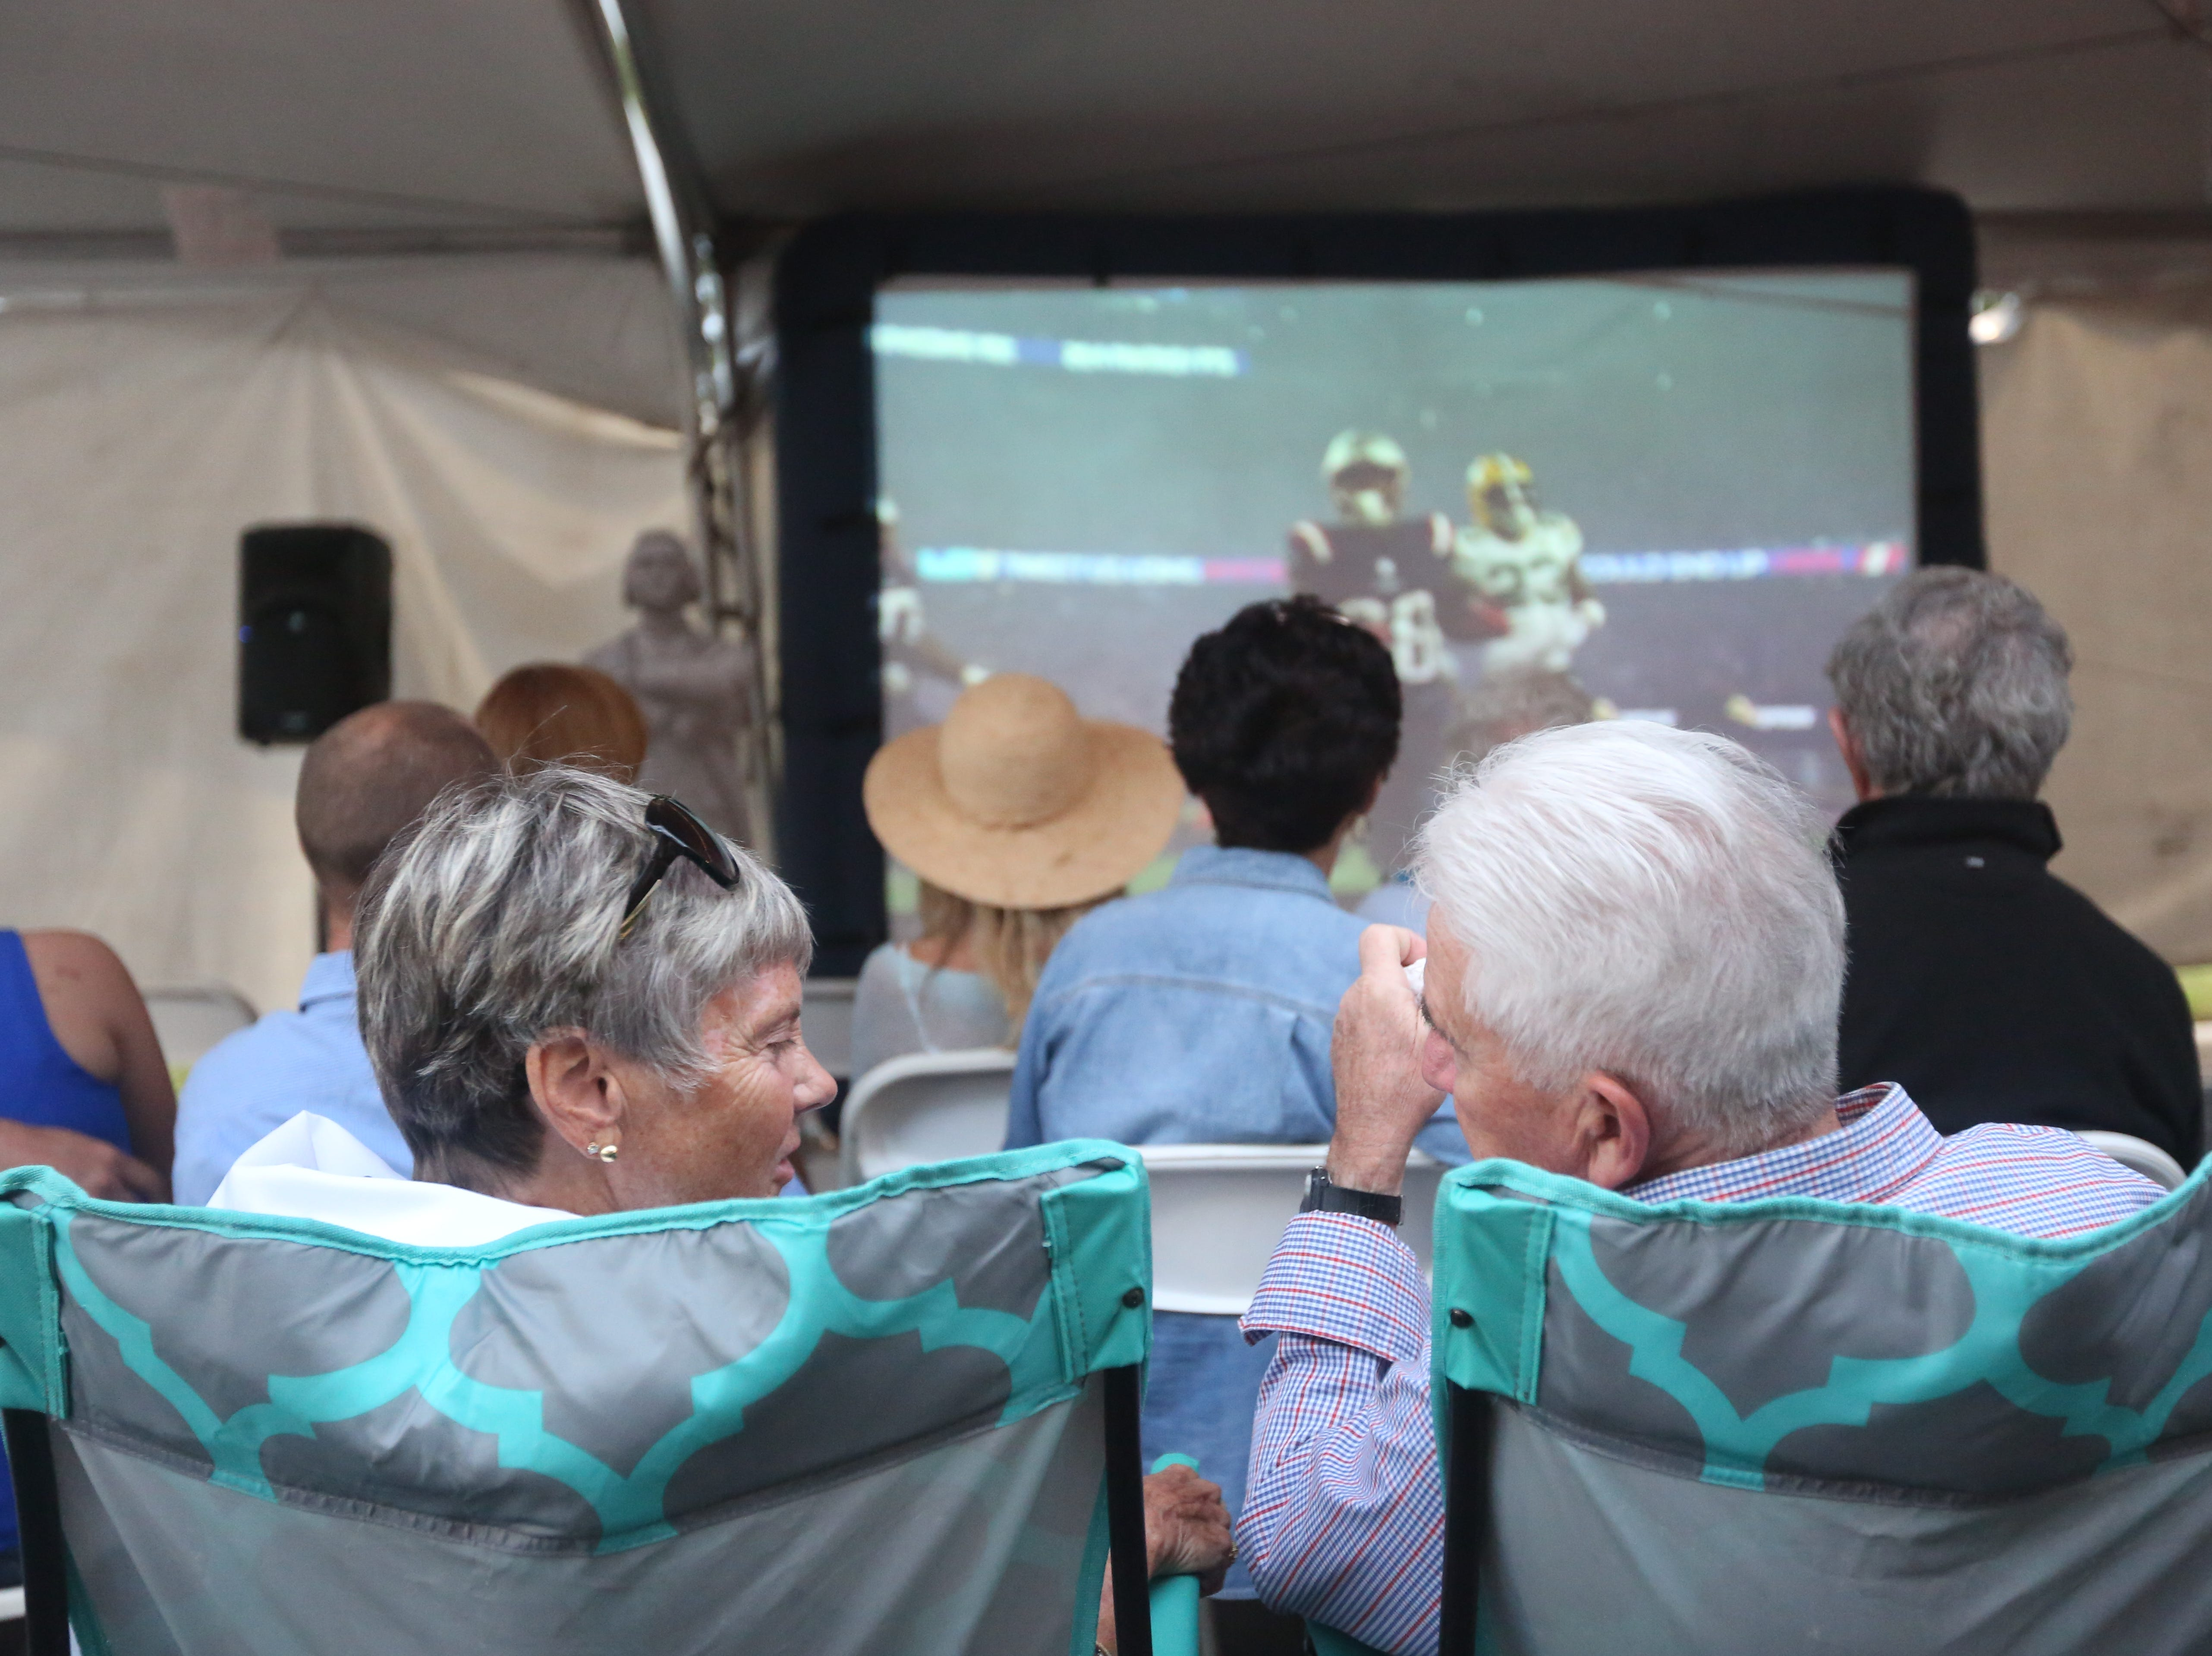 Molly and Glenn Ruoss, from Maine, watch the projected game in the large tent adjacent the Foxboro Sports Tavern in East Naples on Sunday, Feb. 3, 2019.